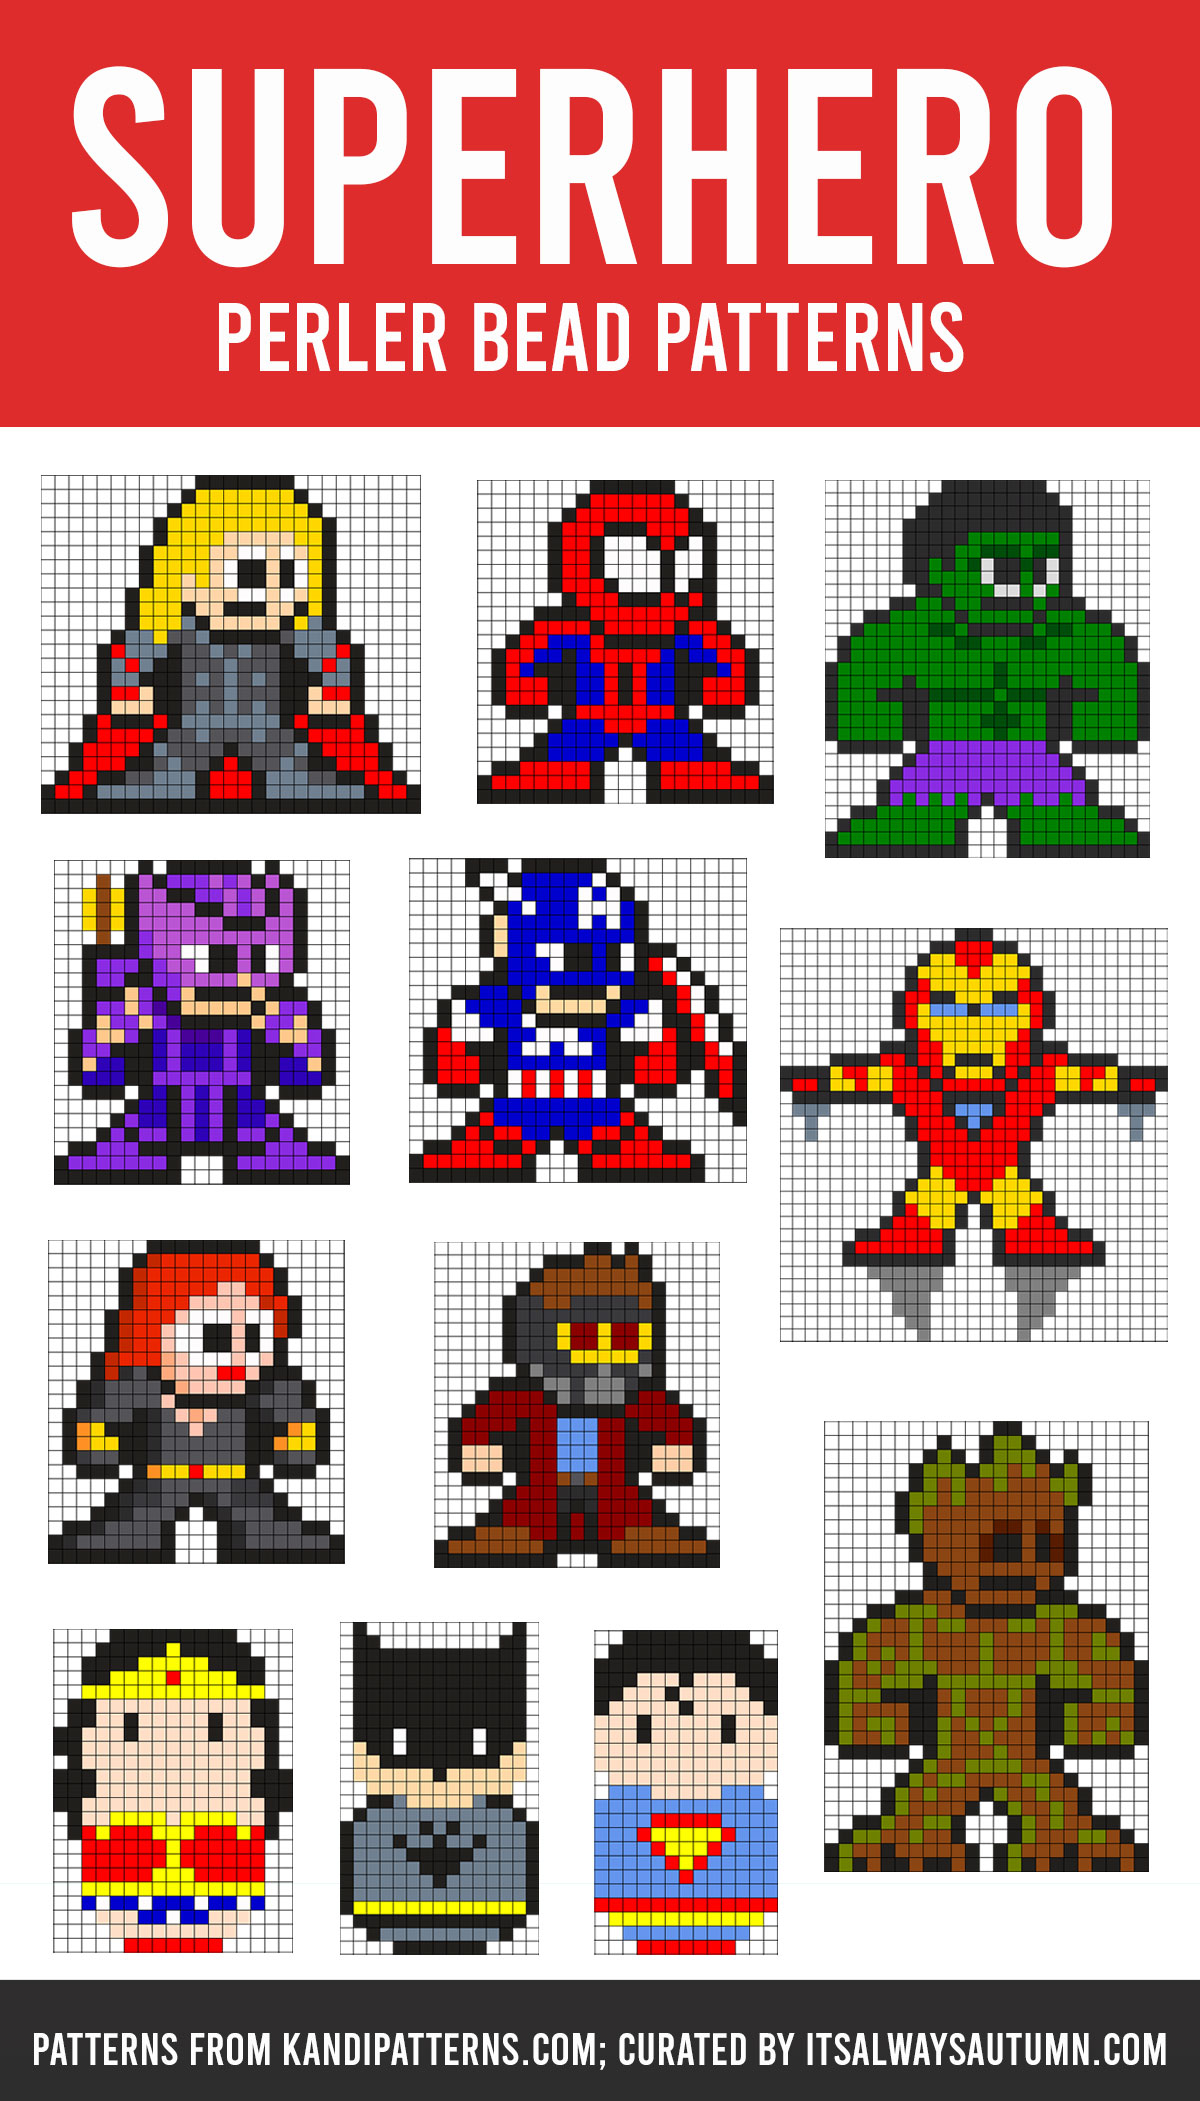 Superhero Perler bead patterns; Marvel Perler bead patterns